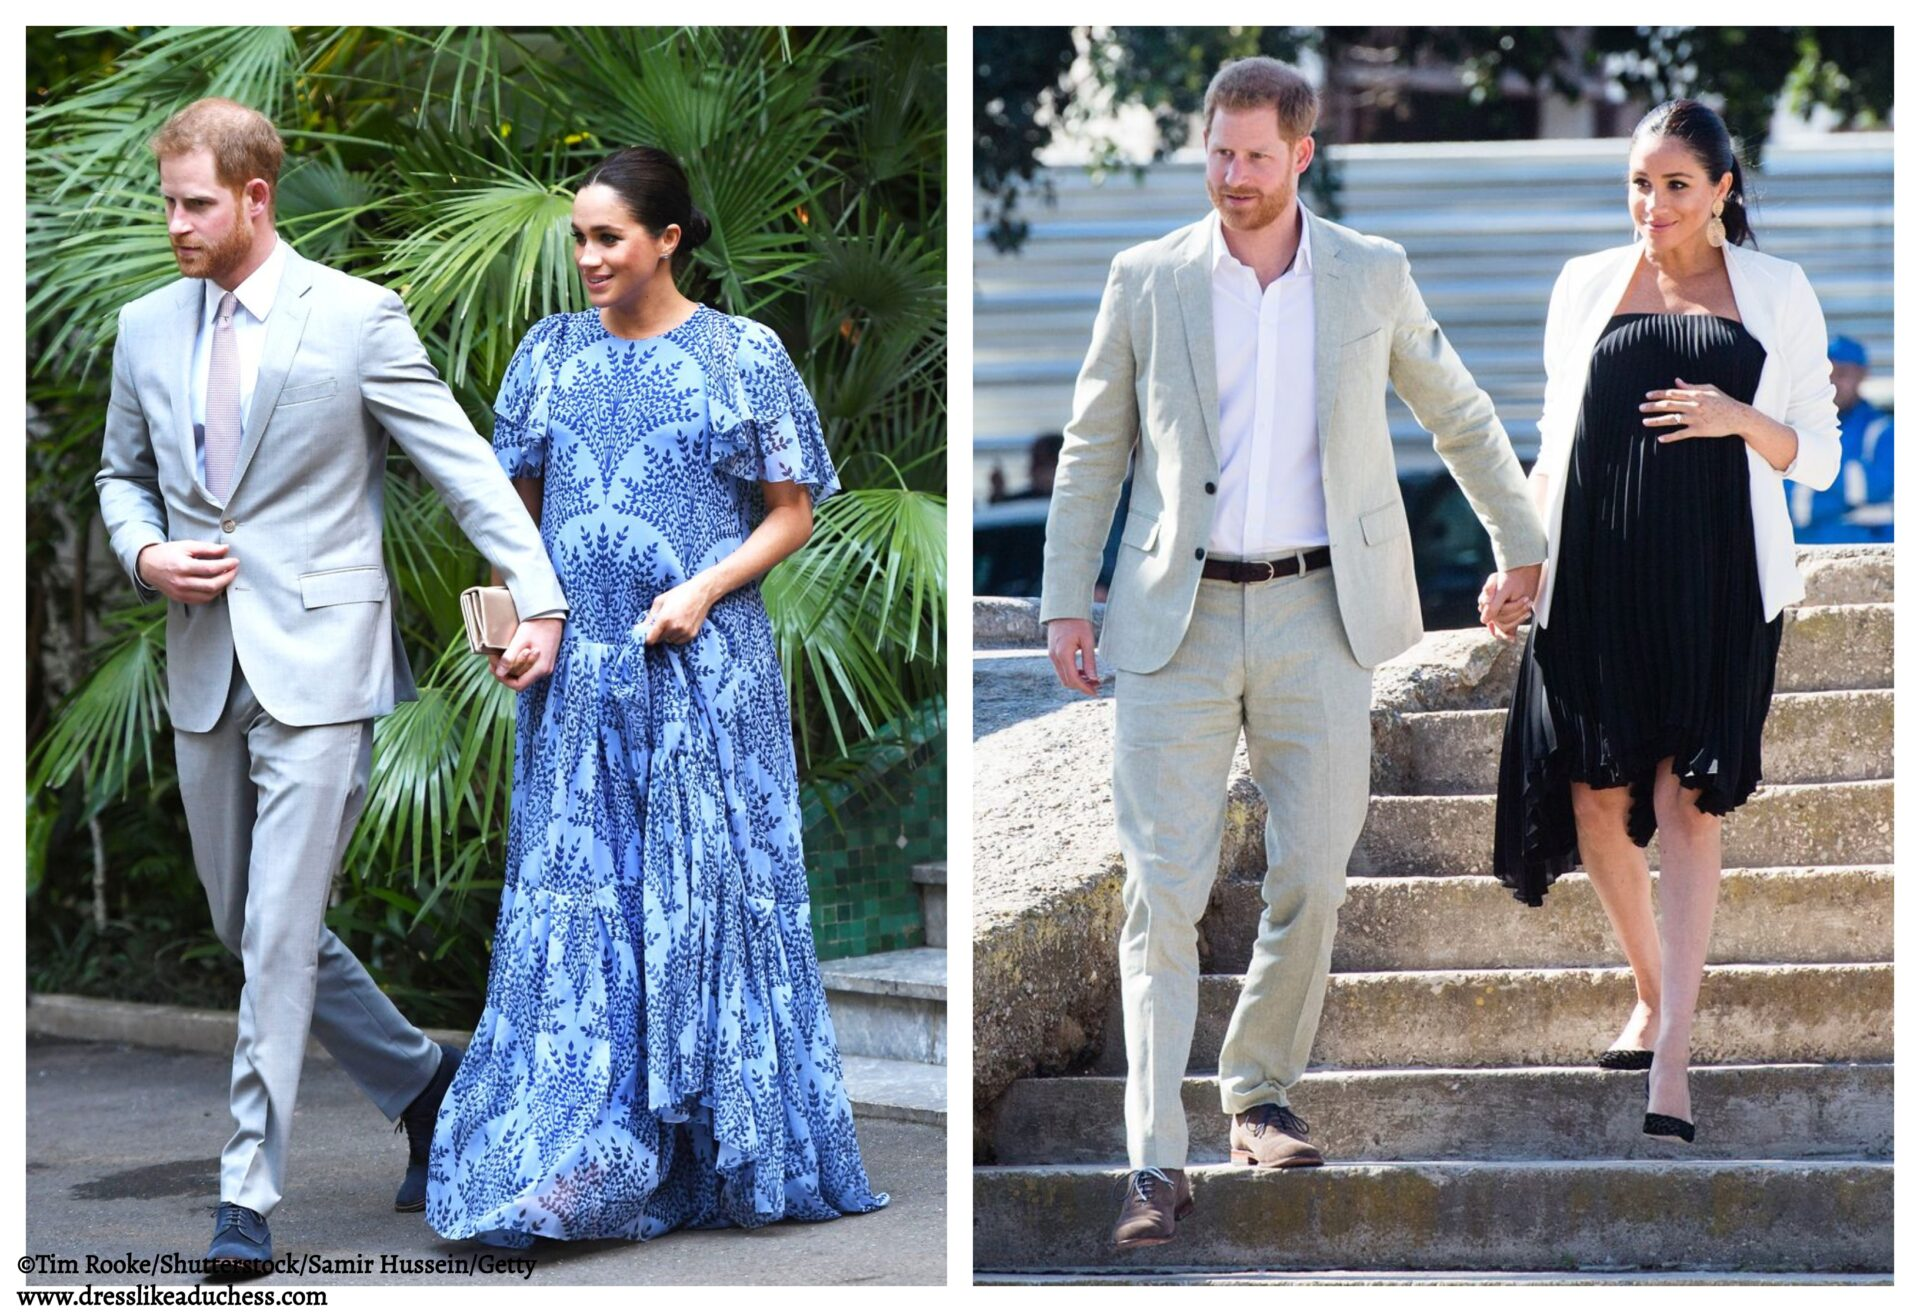 96f5c84f84 Meghan Markle in Loyd Ford Pleated Dress and Floral Carolina Herrera for  Final Day in Morocco